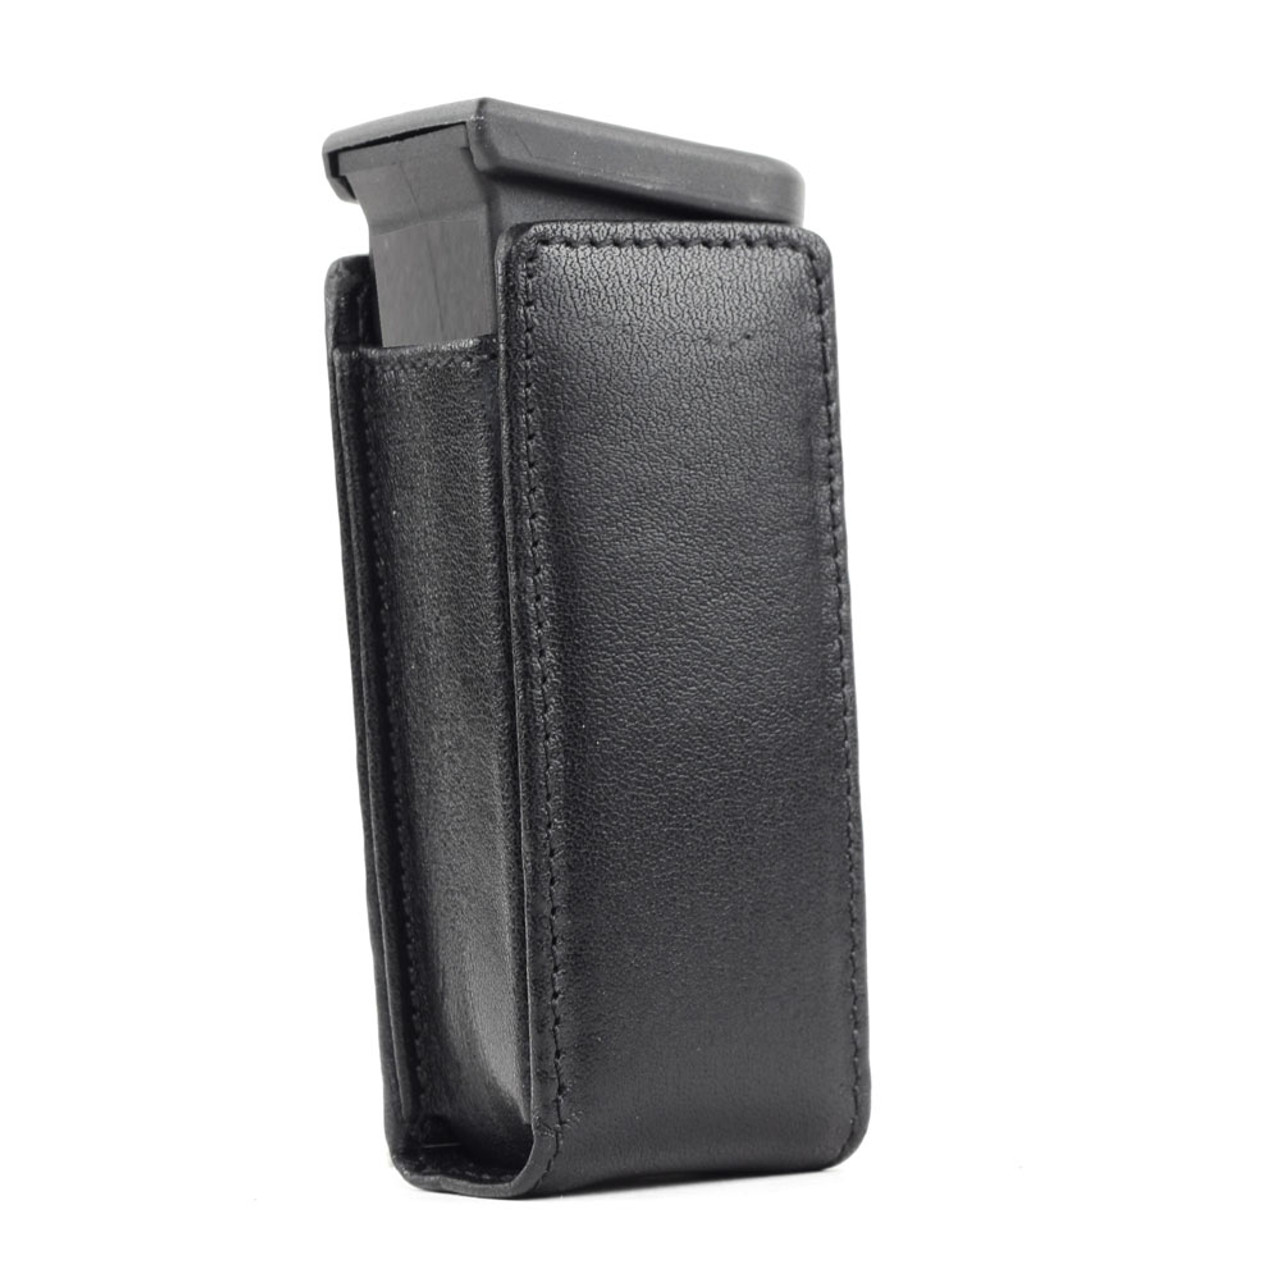 M&P 9c Magazine Pocket Protector